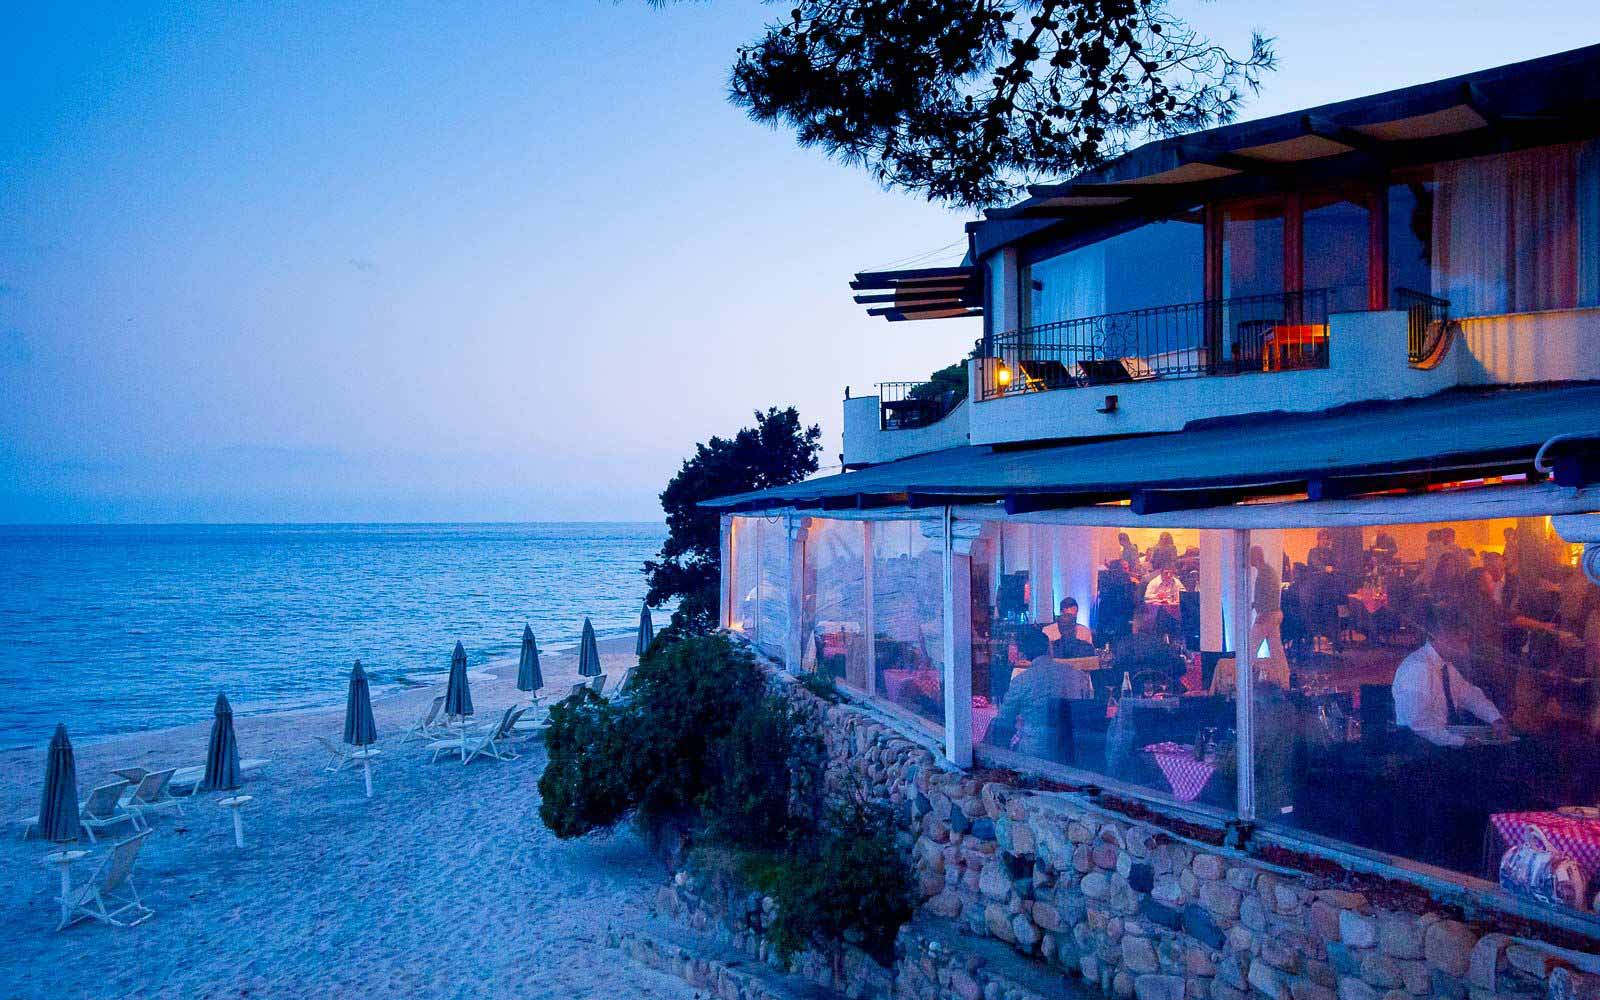 Bellavista restaurant at the Forte Village Resort